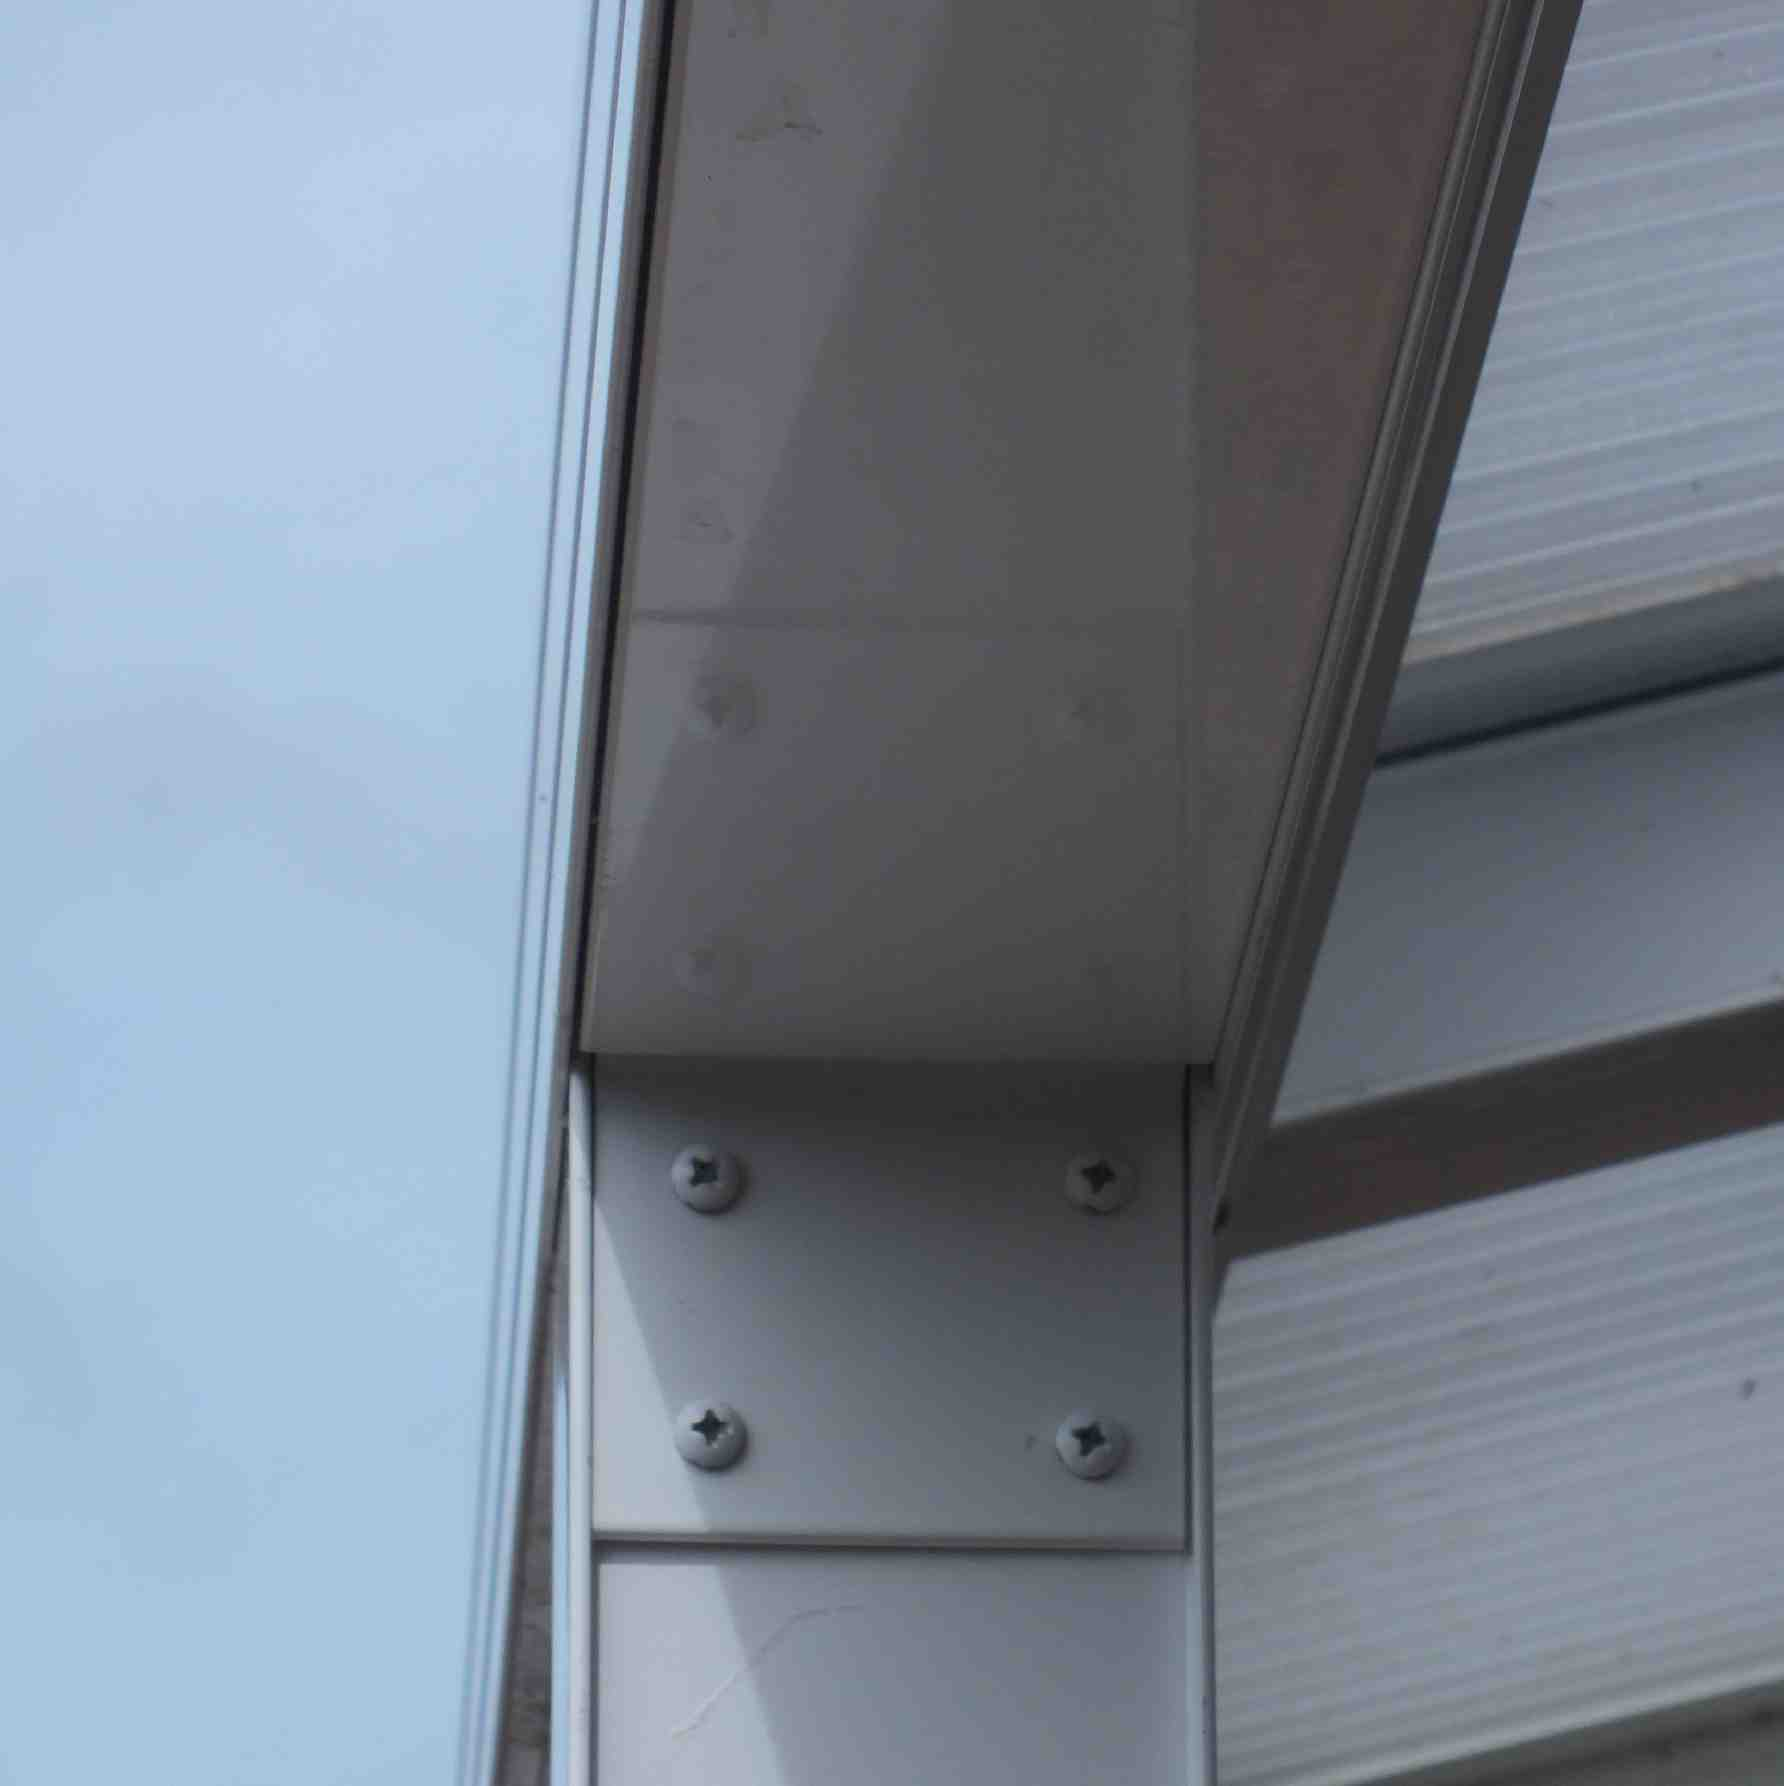 Affordable Omega Verandah with 16mm Polycarbonate Glazing - 9.2m (W) x 3.5m (P), (5) Supporting Posts